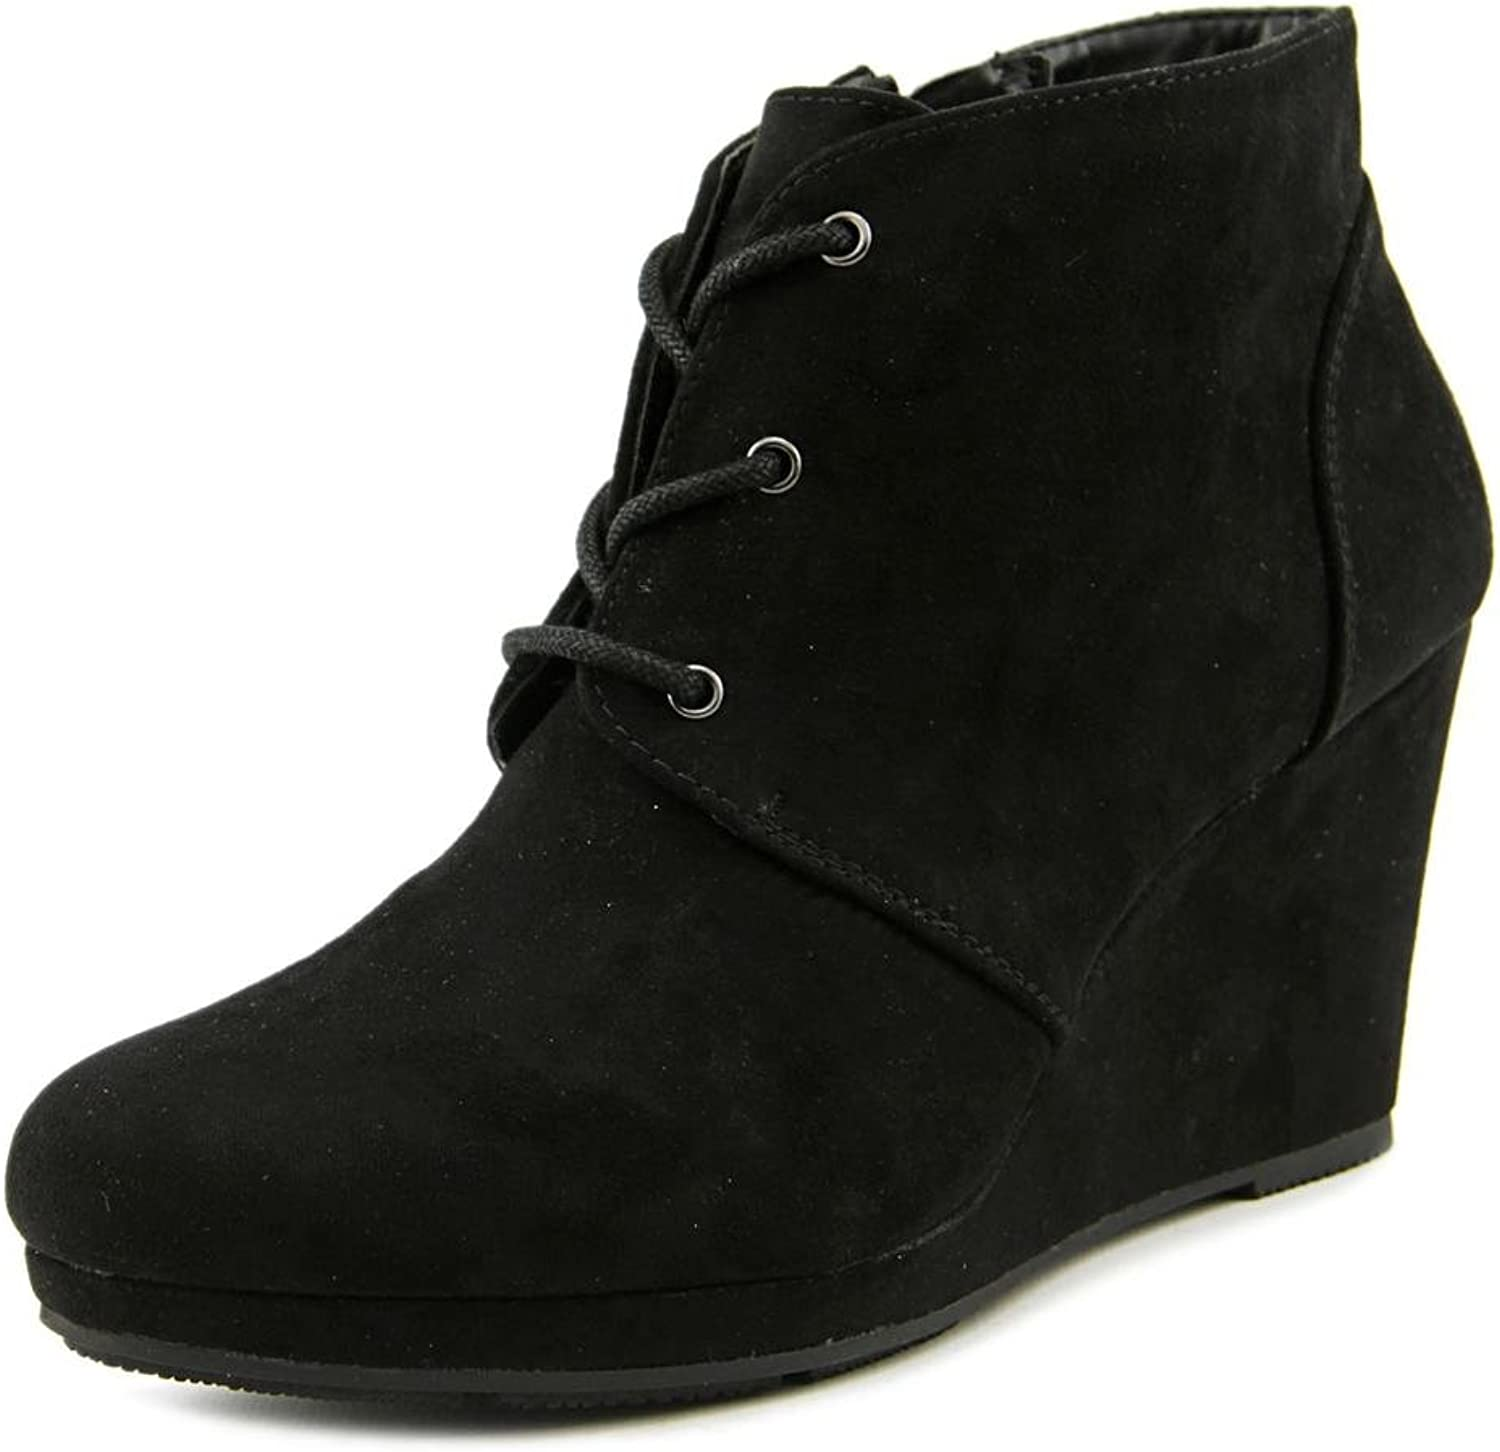 Style & Co. Womens Alaisi Closed Toe Ankle Fashion Boots, Black, Size 5.5